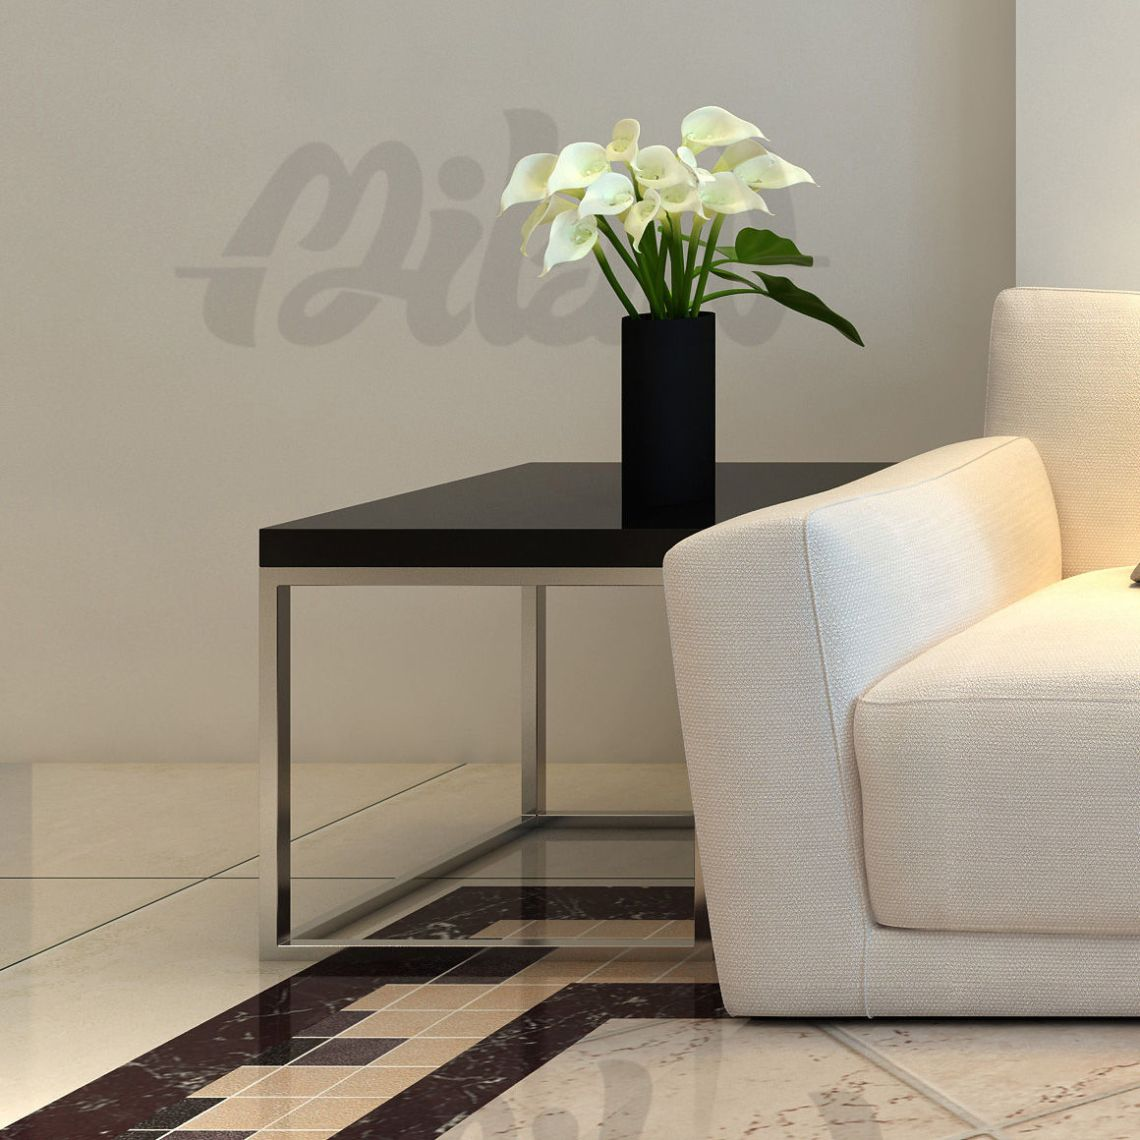 Download Psd Free Living Room Mockup Yellowimages